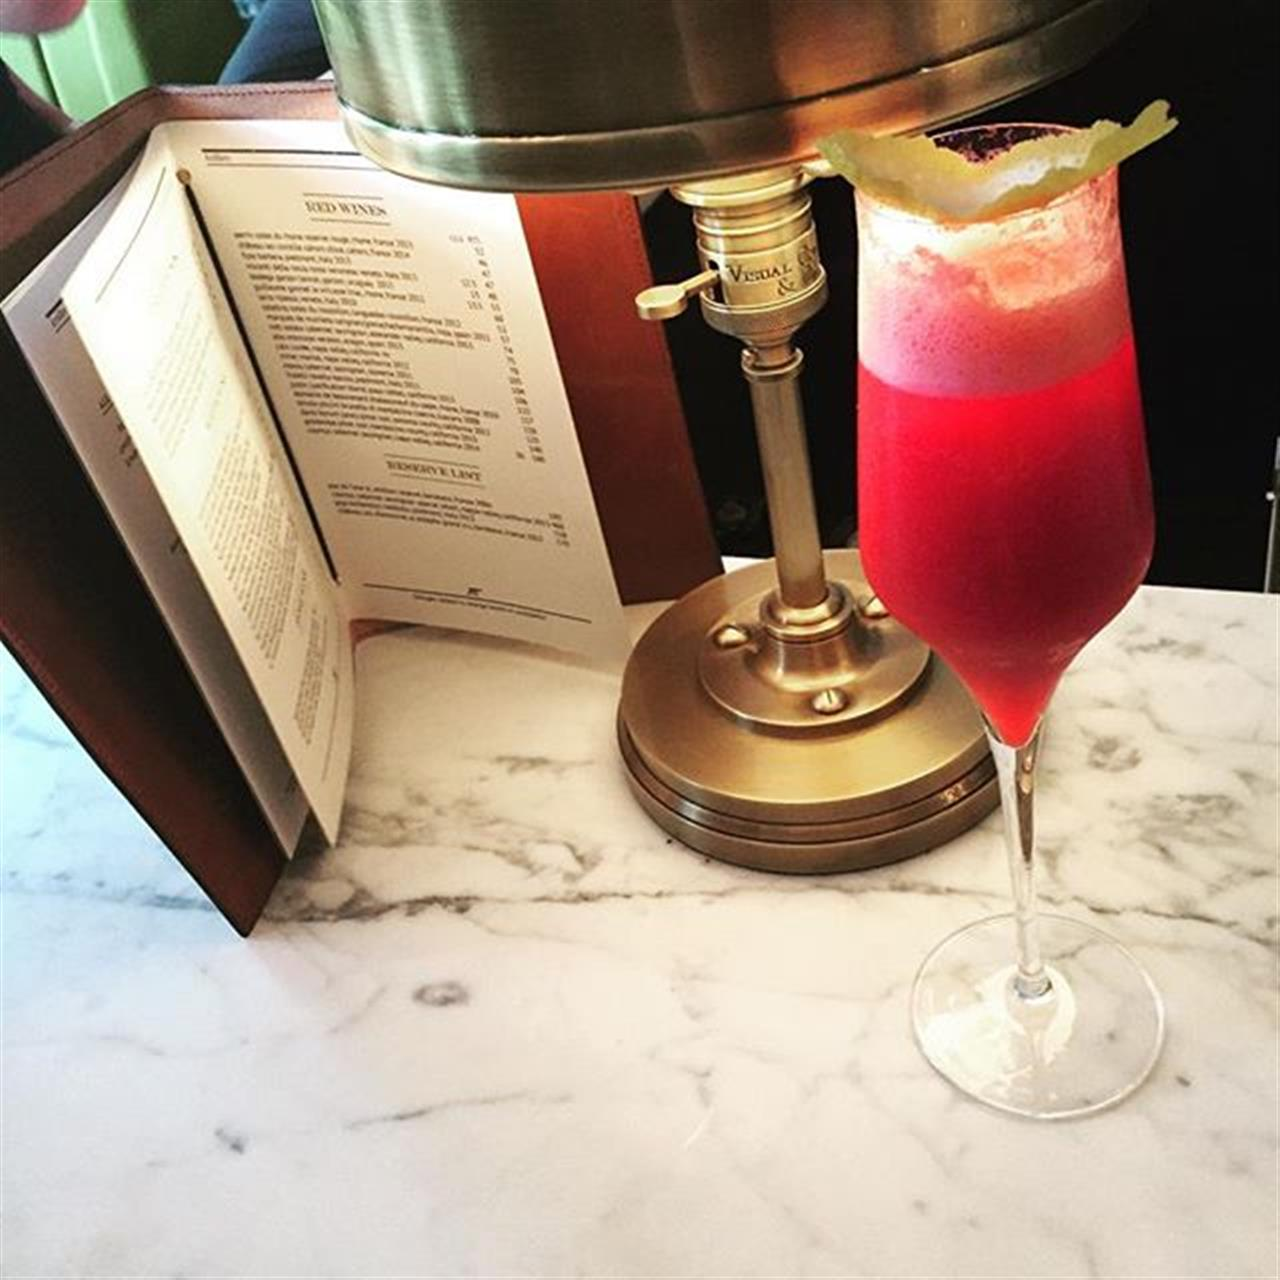 #sippin a delicious #cocktail at The Artillery (Savannah's newest bar!) to celebrate my two closings and three new listings this week! #downtownsavannah #happyhour #theartillery